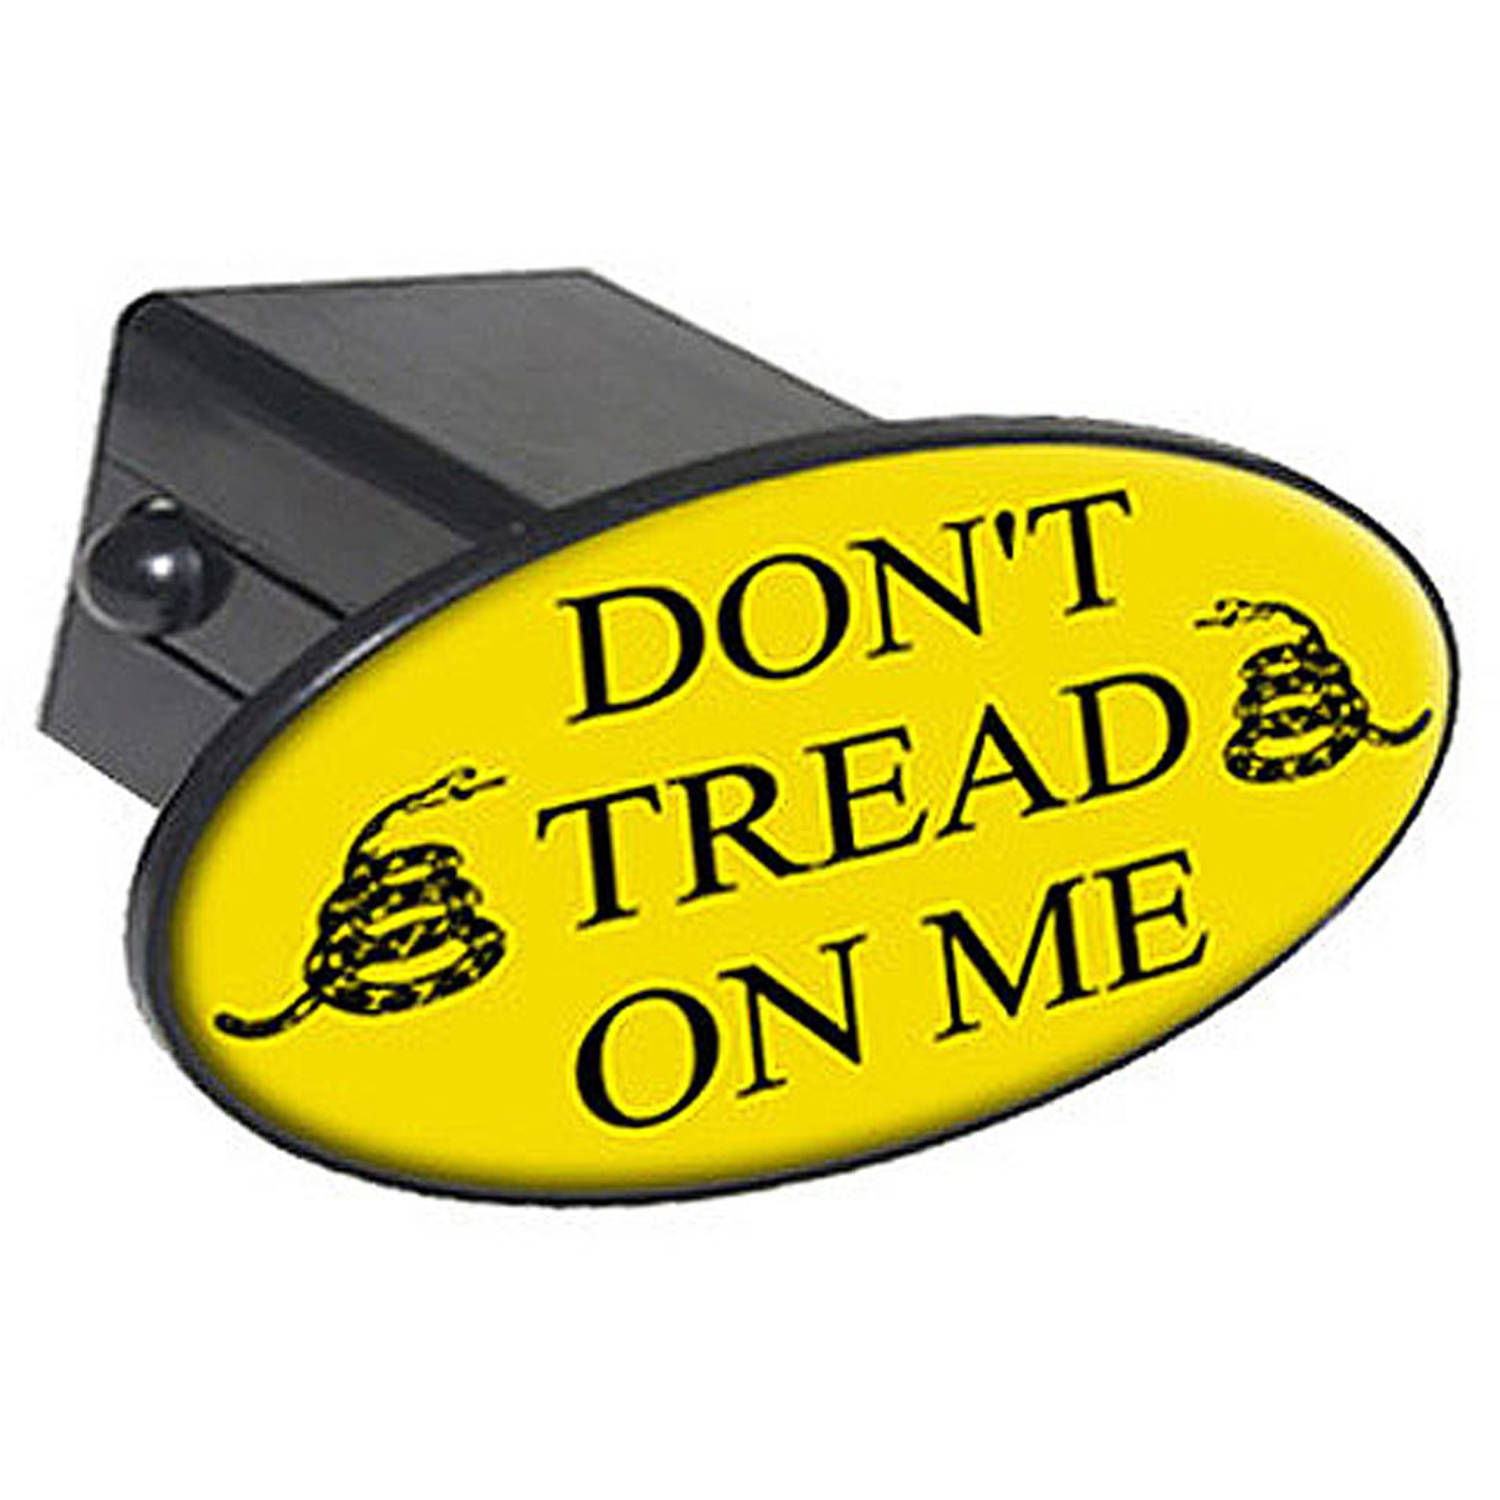 "Gadsden Don't Tread On Me 2"" Oval Tow Trailer Hitch Cover Plug Insert"